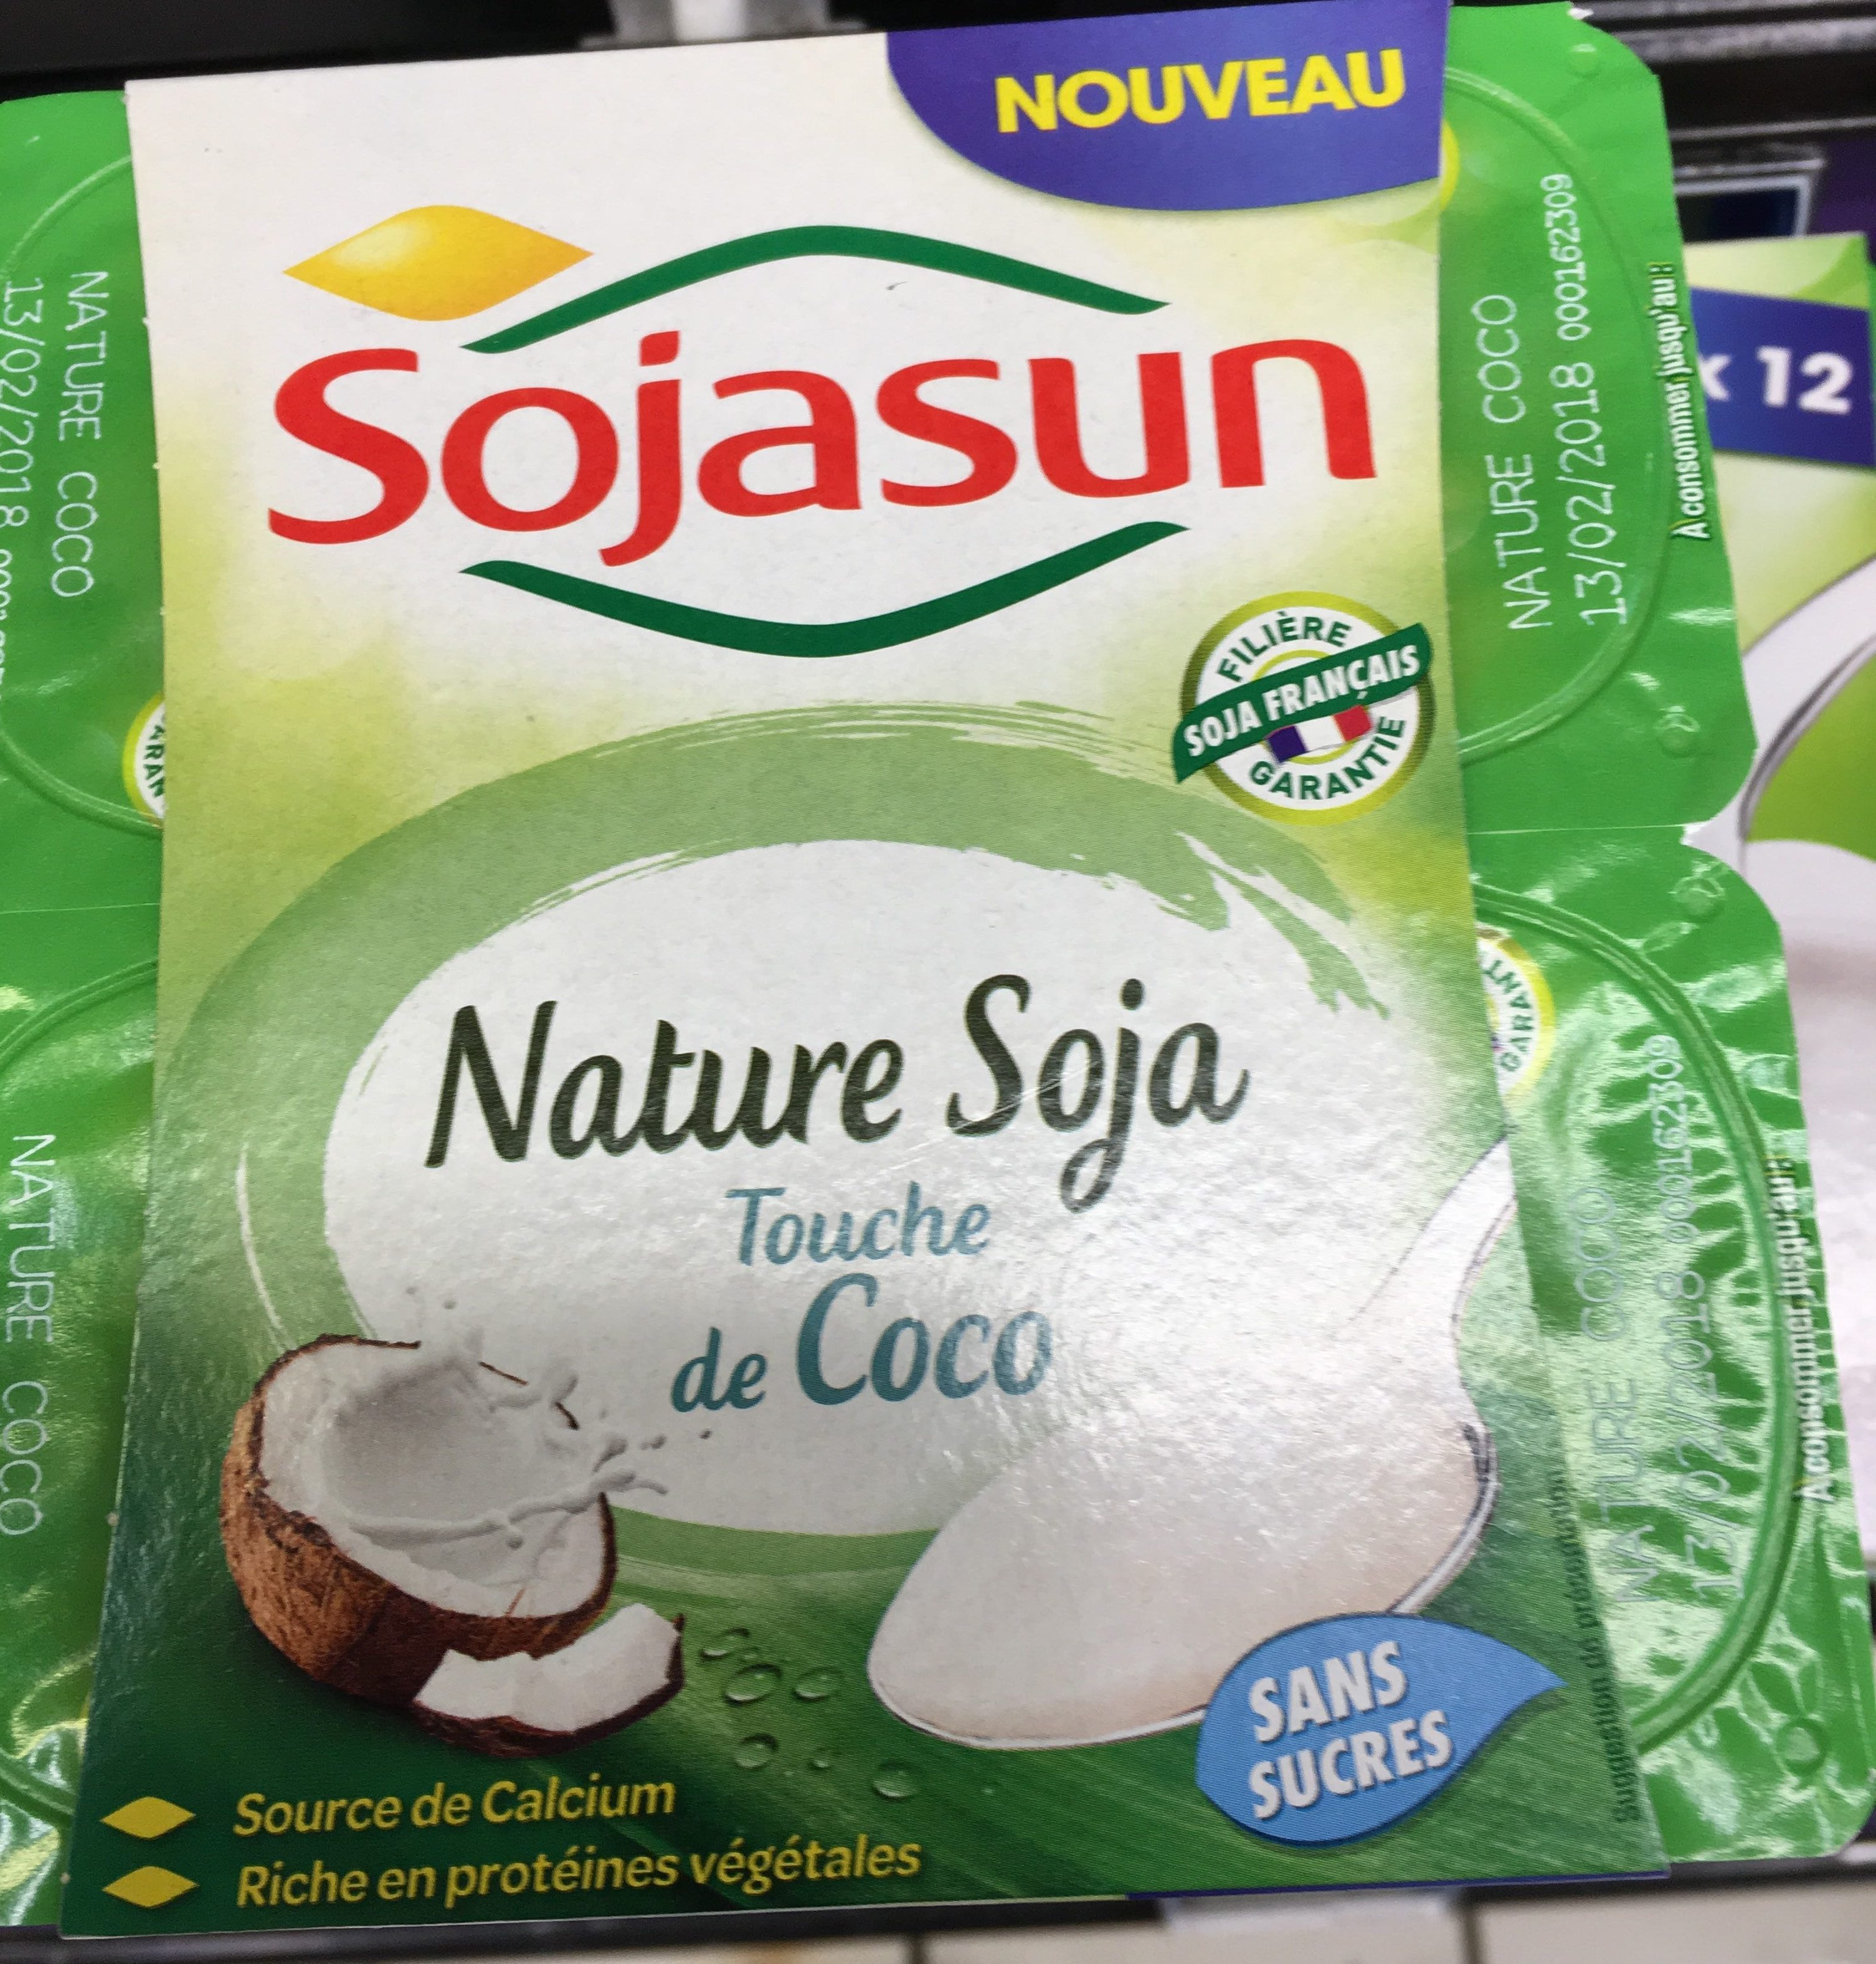 Sojasun nature coco - Product - fr